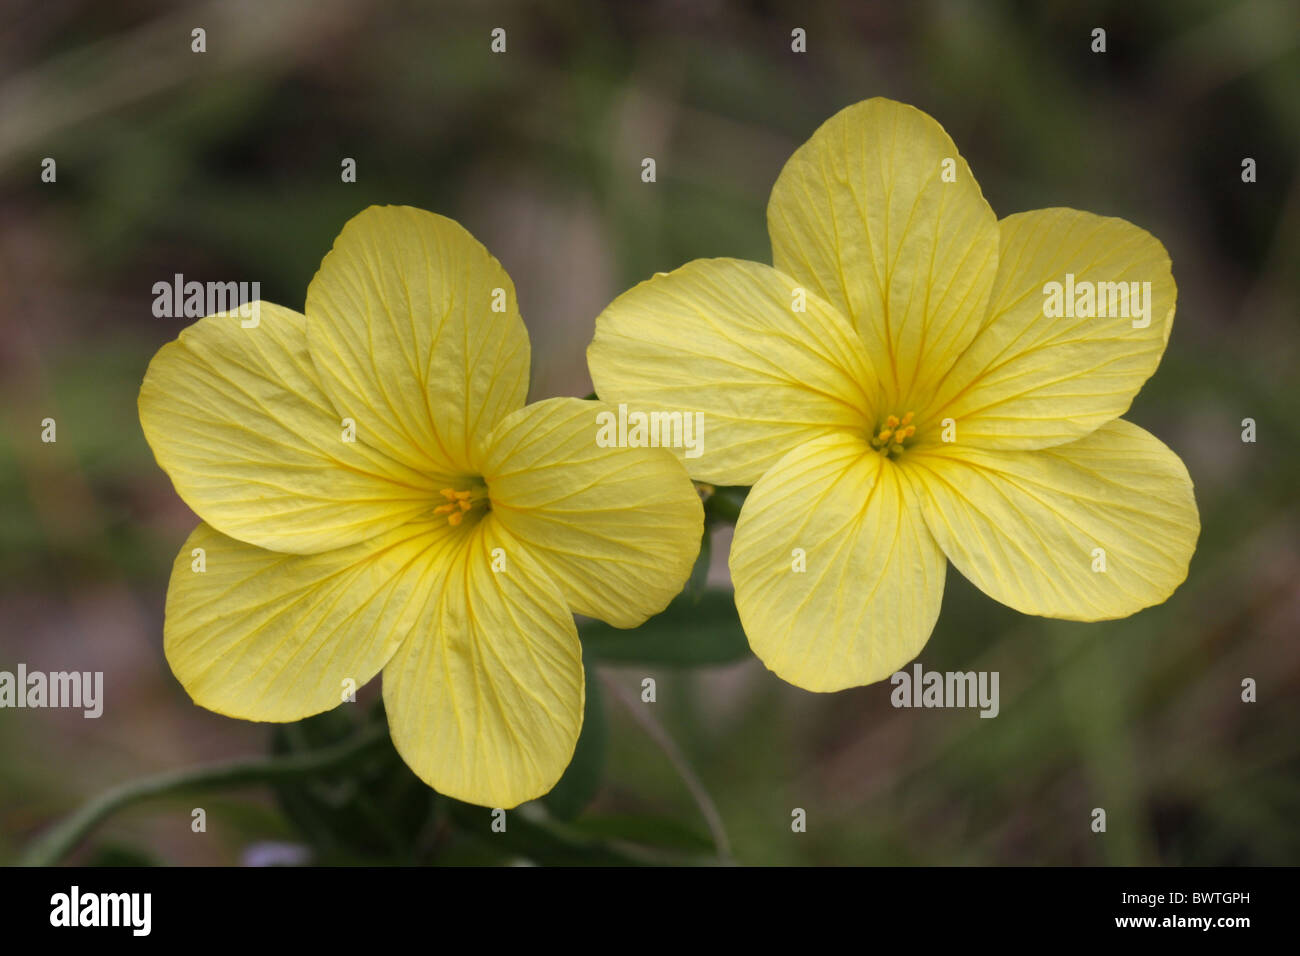 Flax flaxes linum stock photos flax flaxes linum stock images alamy yellow flax linum flavum close up flowers france stock image mightylinksfo